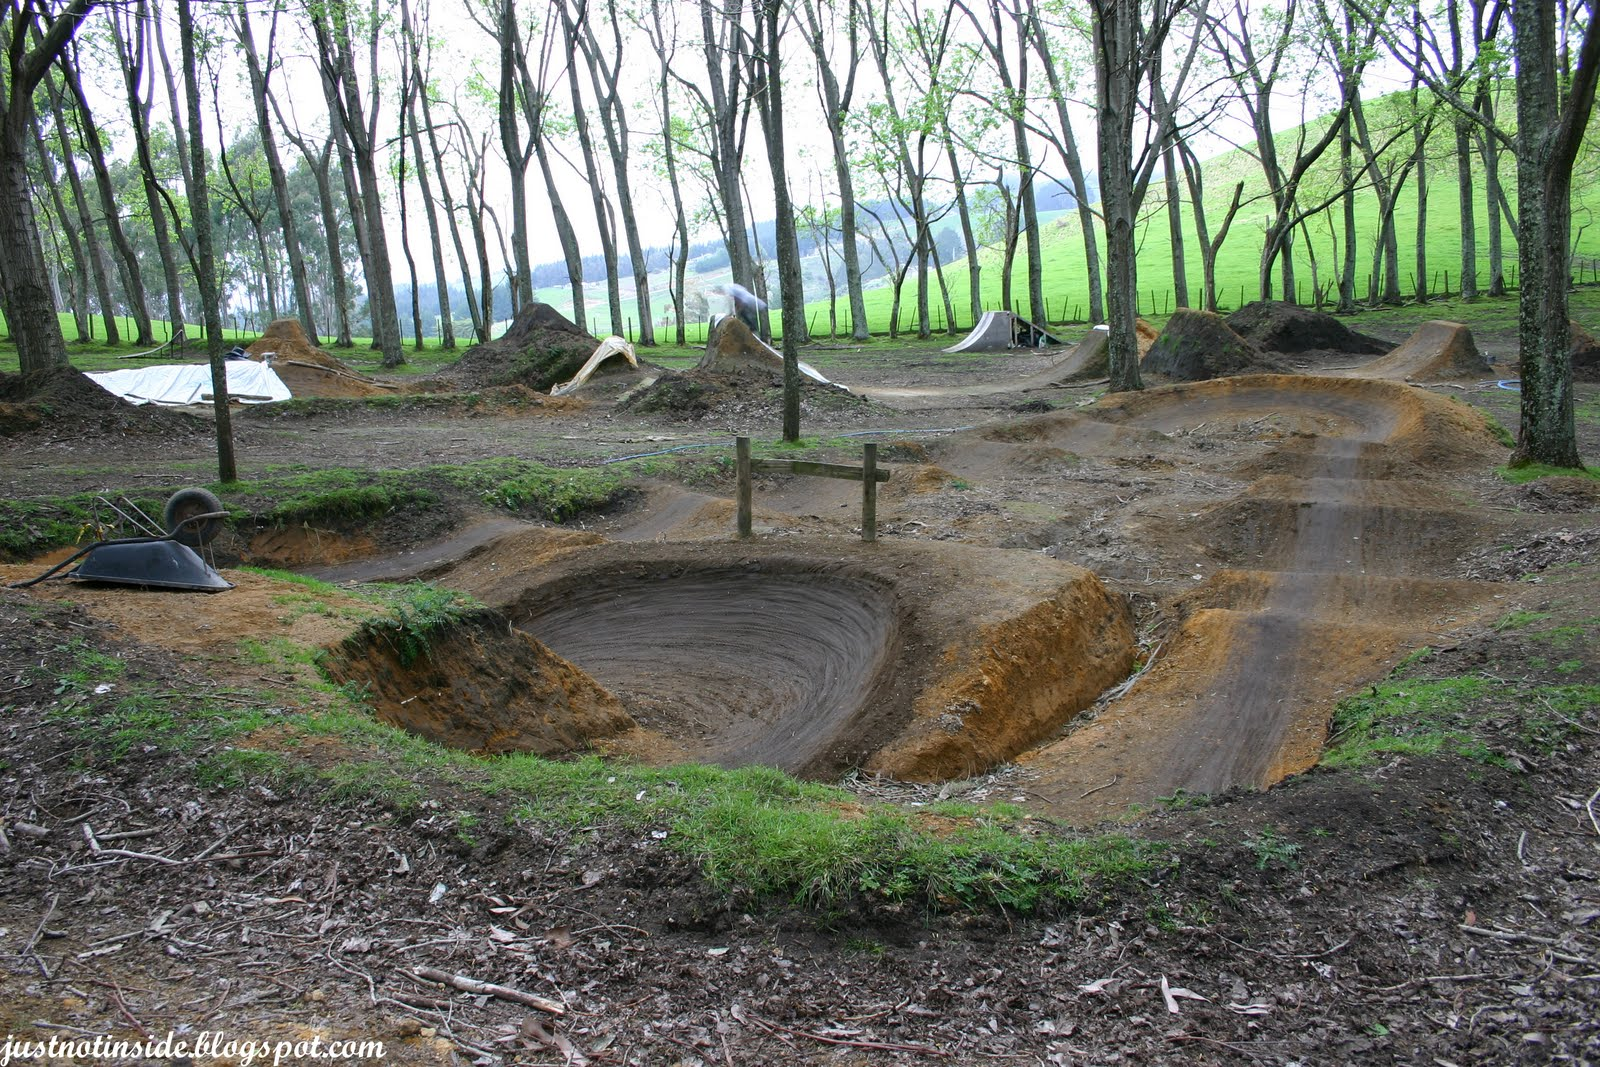 Backyard Bmx Pump Track :  Rugged Material PumpTrack on Pinterest  Track, Pump and Backyards